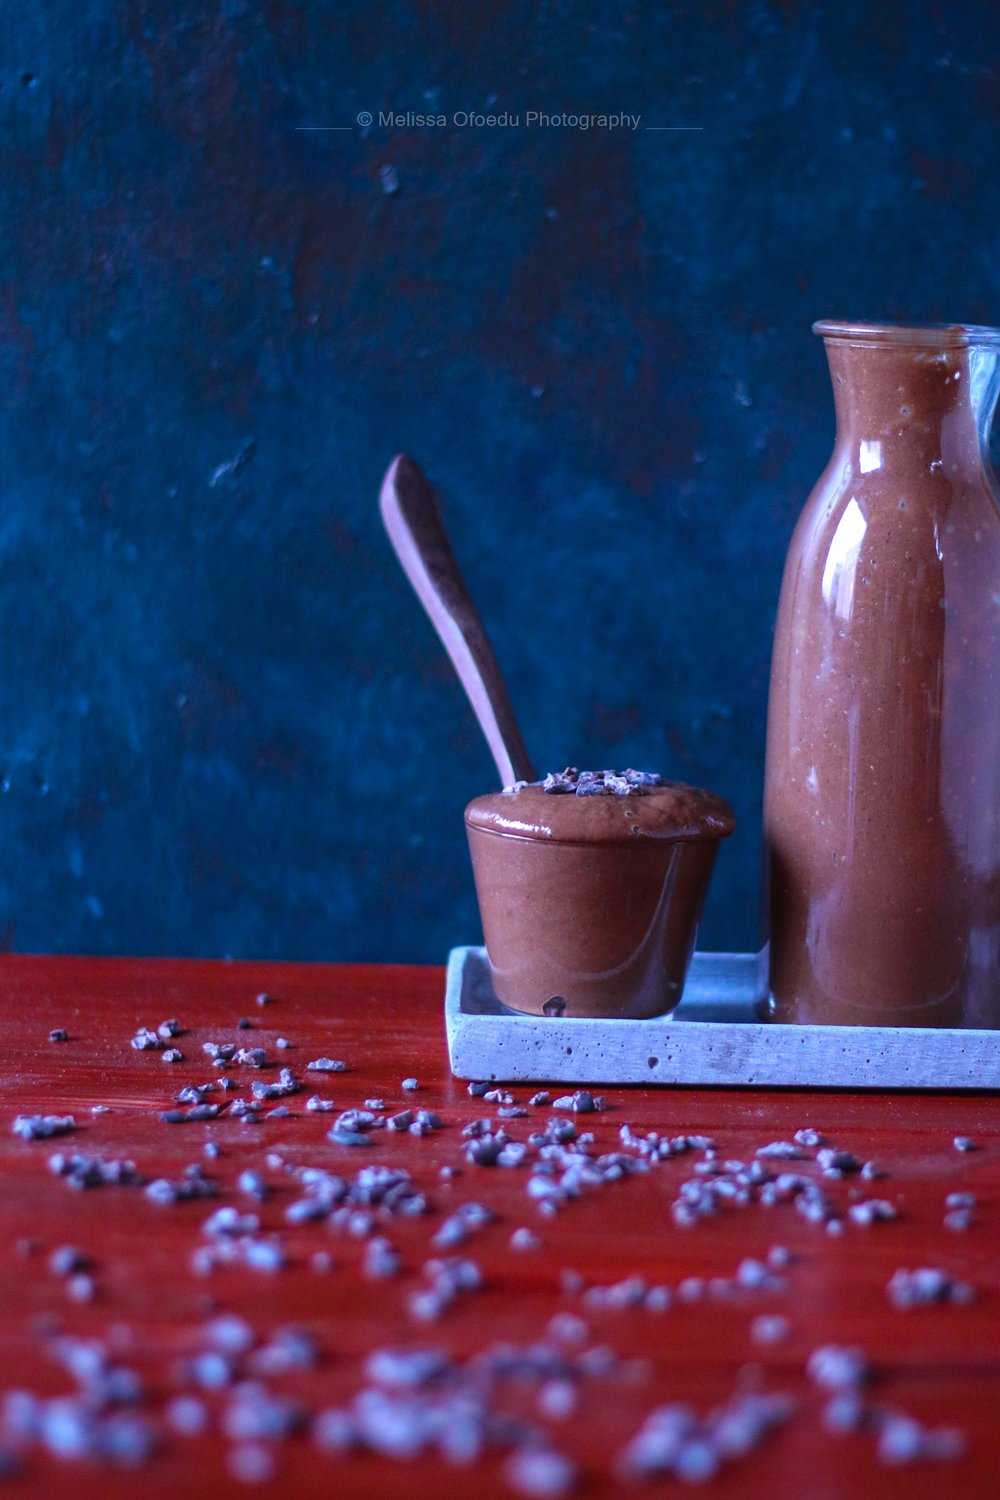 Chocolate-Banana-Cream-Smoothie-by-Melissa-Ofoedu-for-A-Sweet-Point-of-View-6.jpg